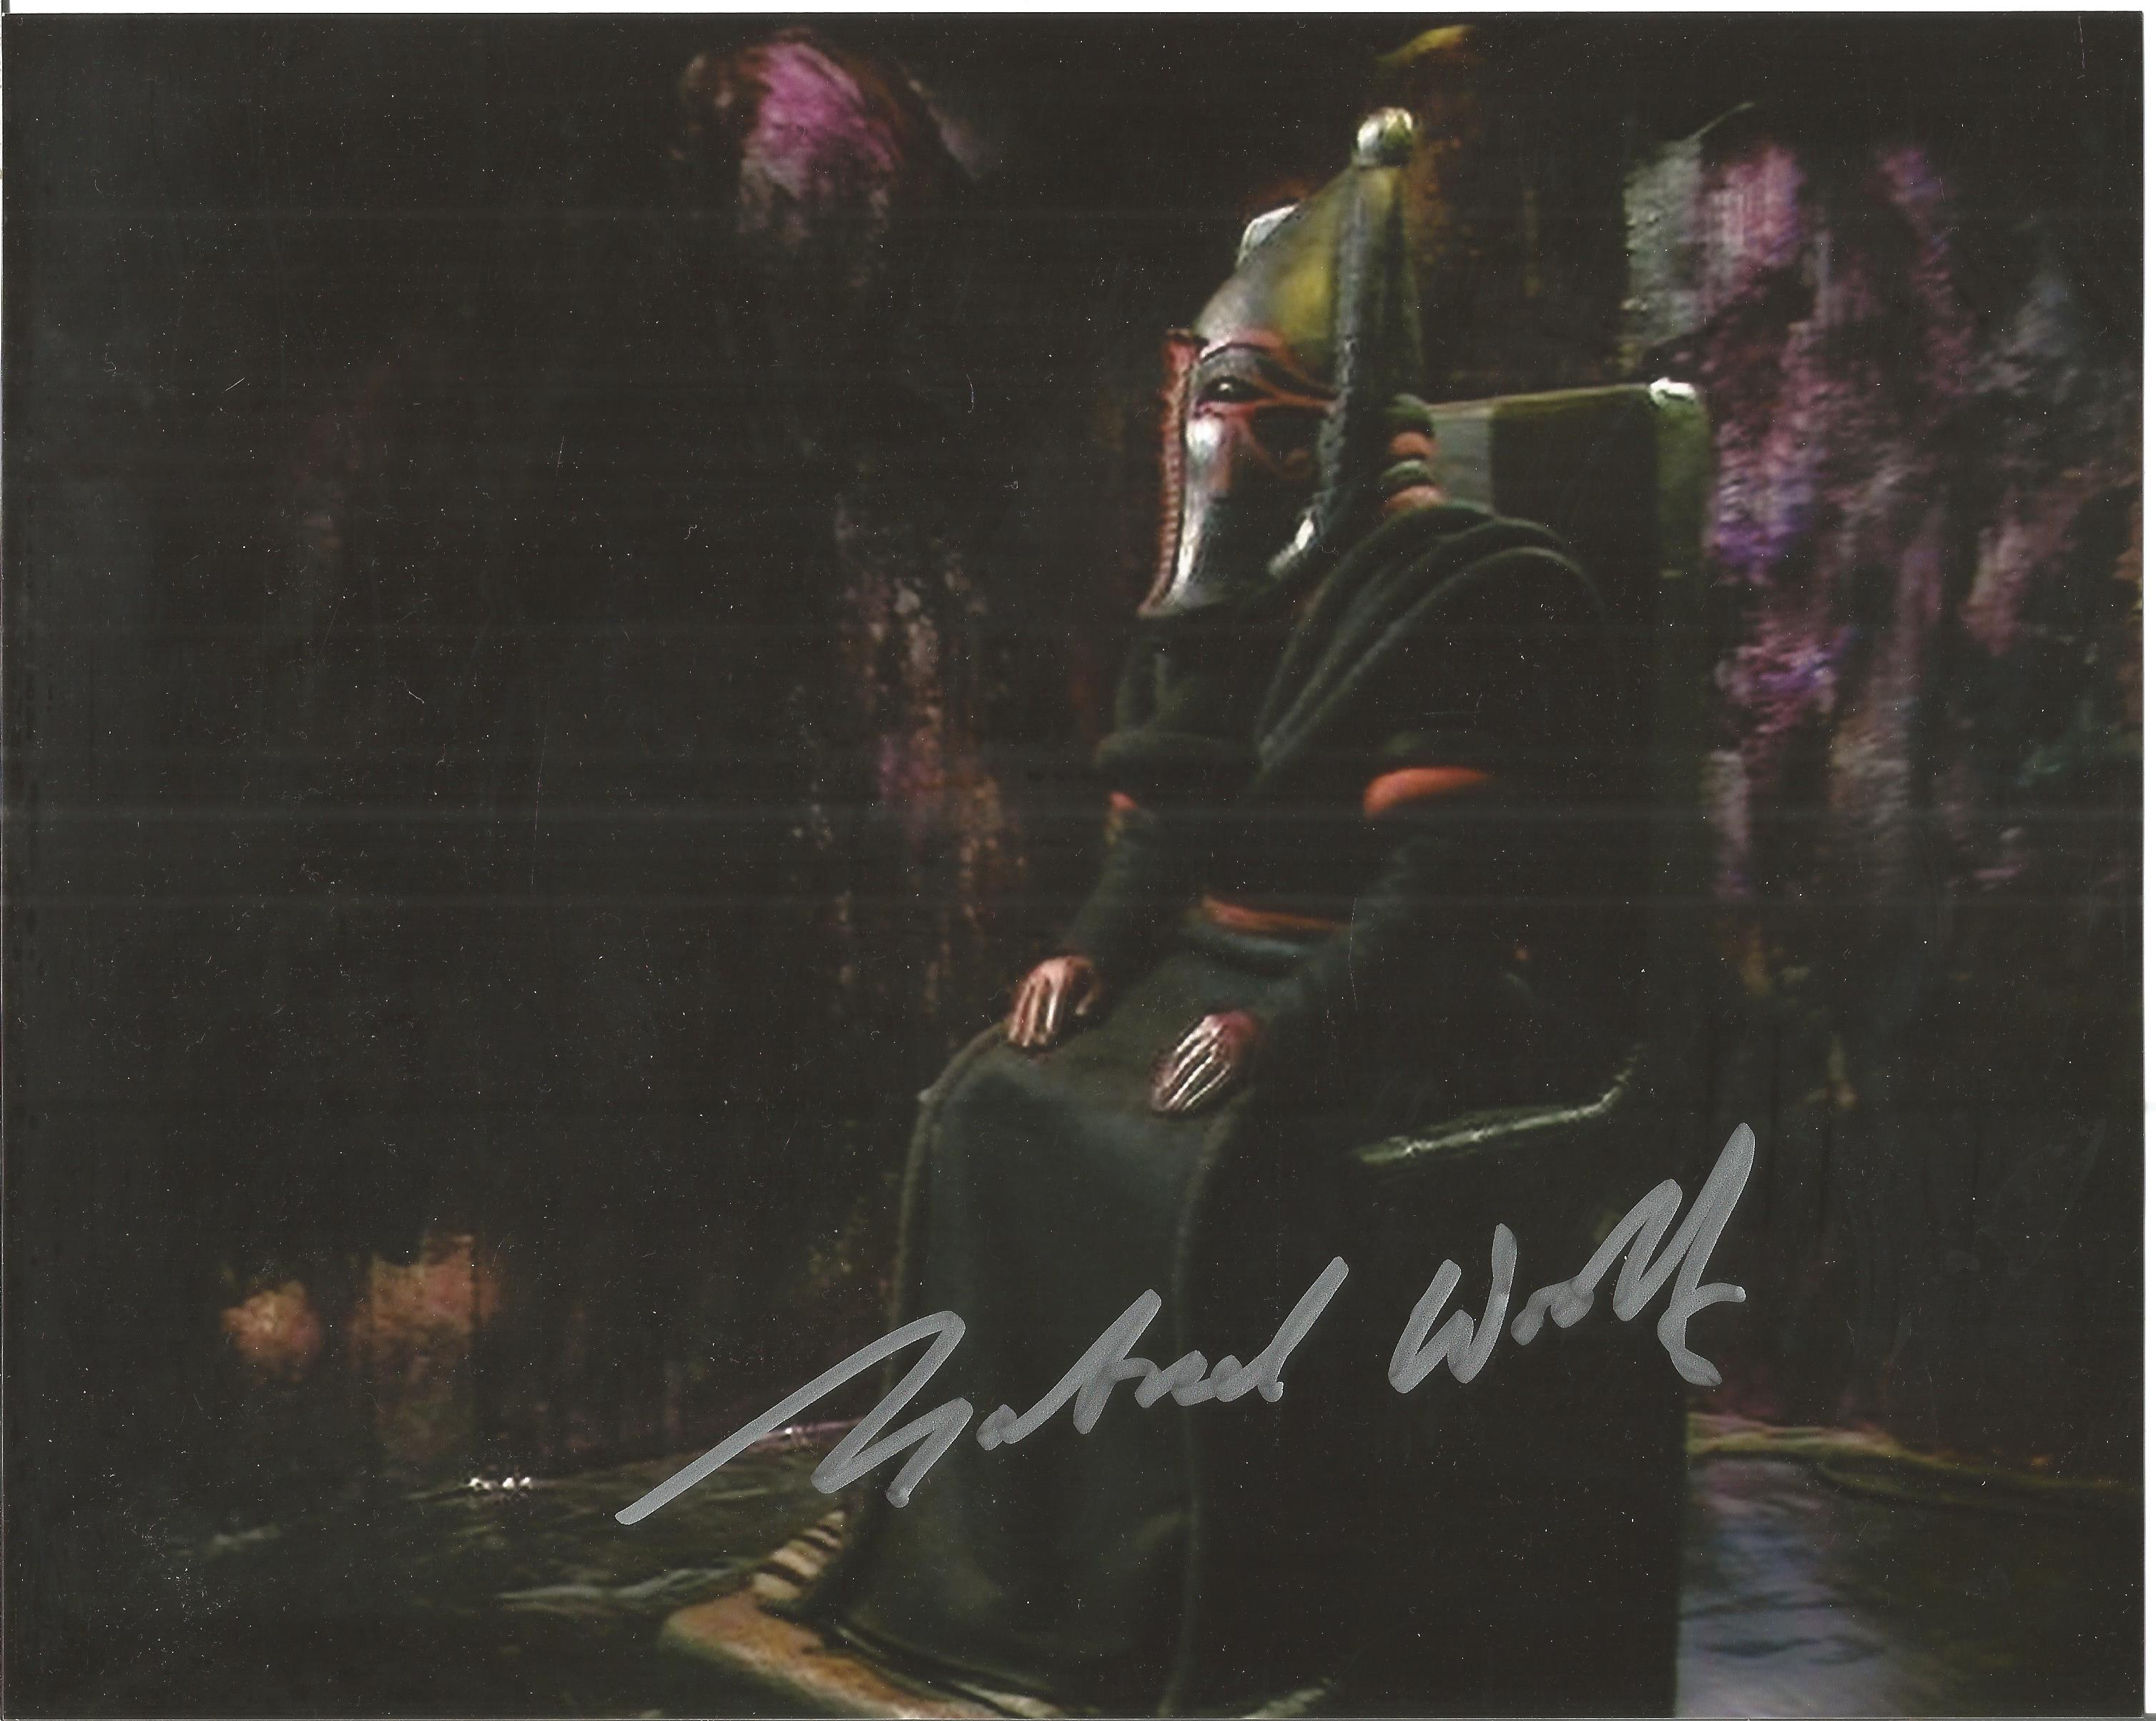 Gabriel Woolf Doctor Who Pyramids of Mars signed 10x8 colour image. Series aired in November 1975.